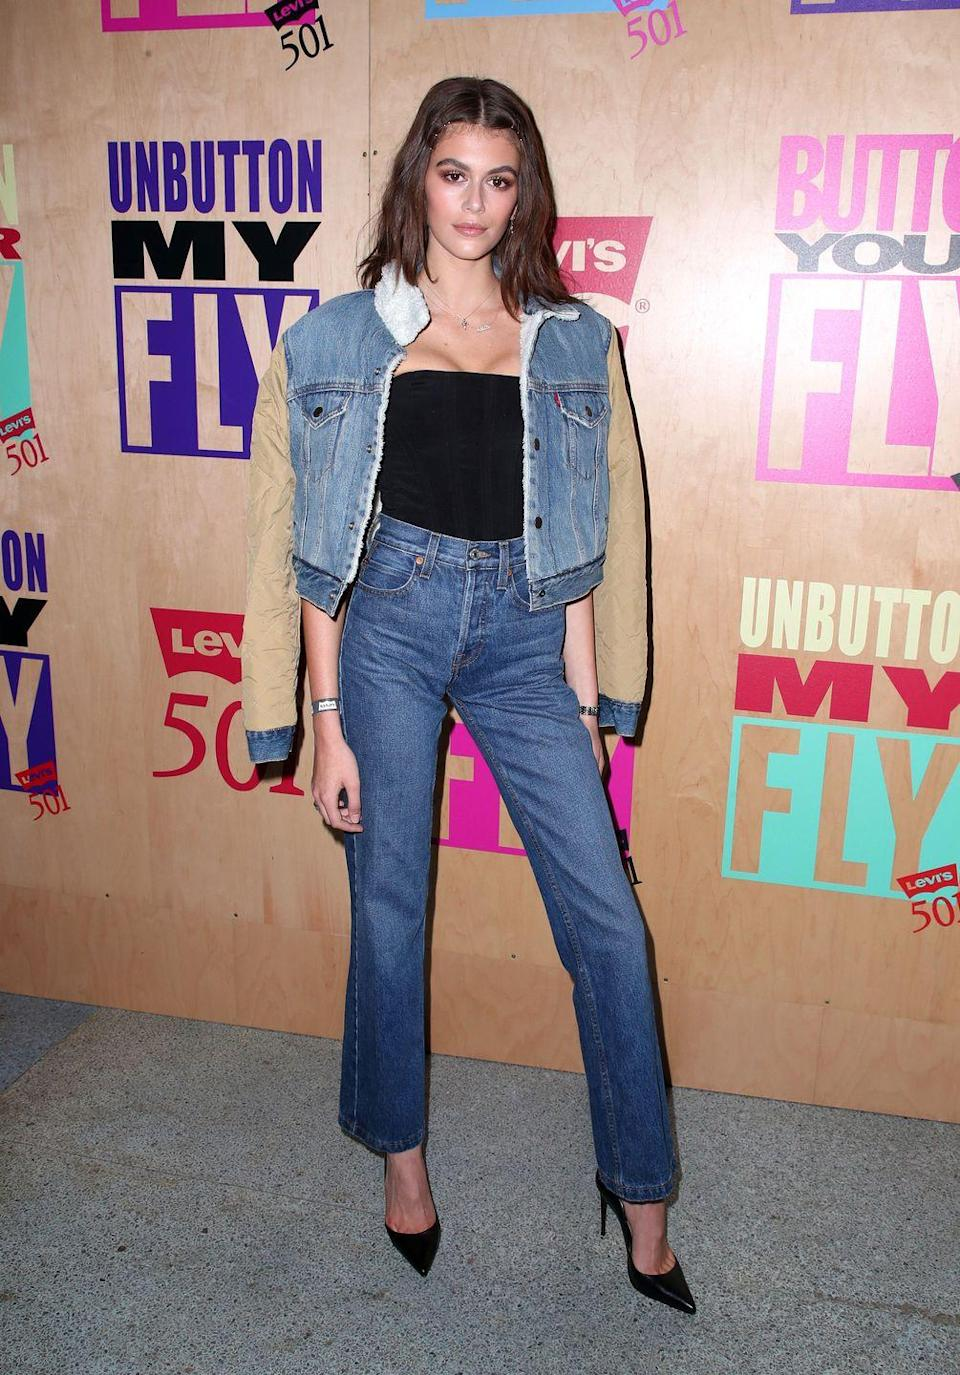 <p>Kaia wore a pair of 501's along with a faded denim jacket with contrasting sleeves and shearling collar for the Levi's 501 Day party in Los Angeles. </p>